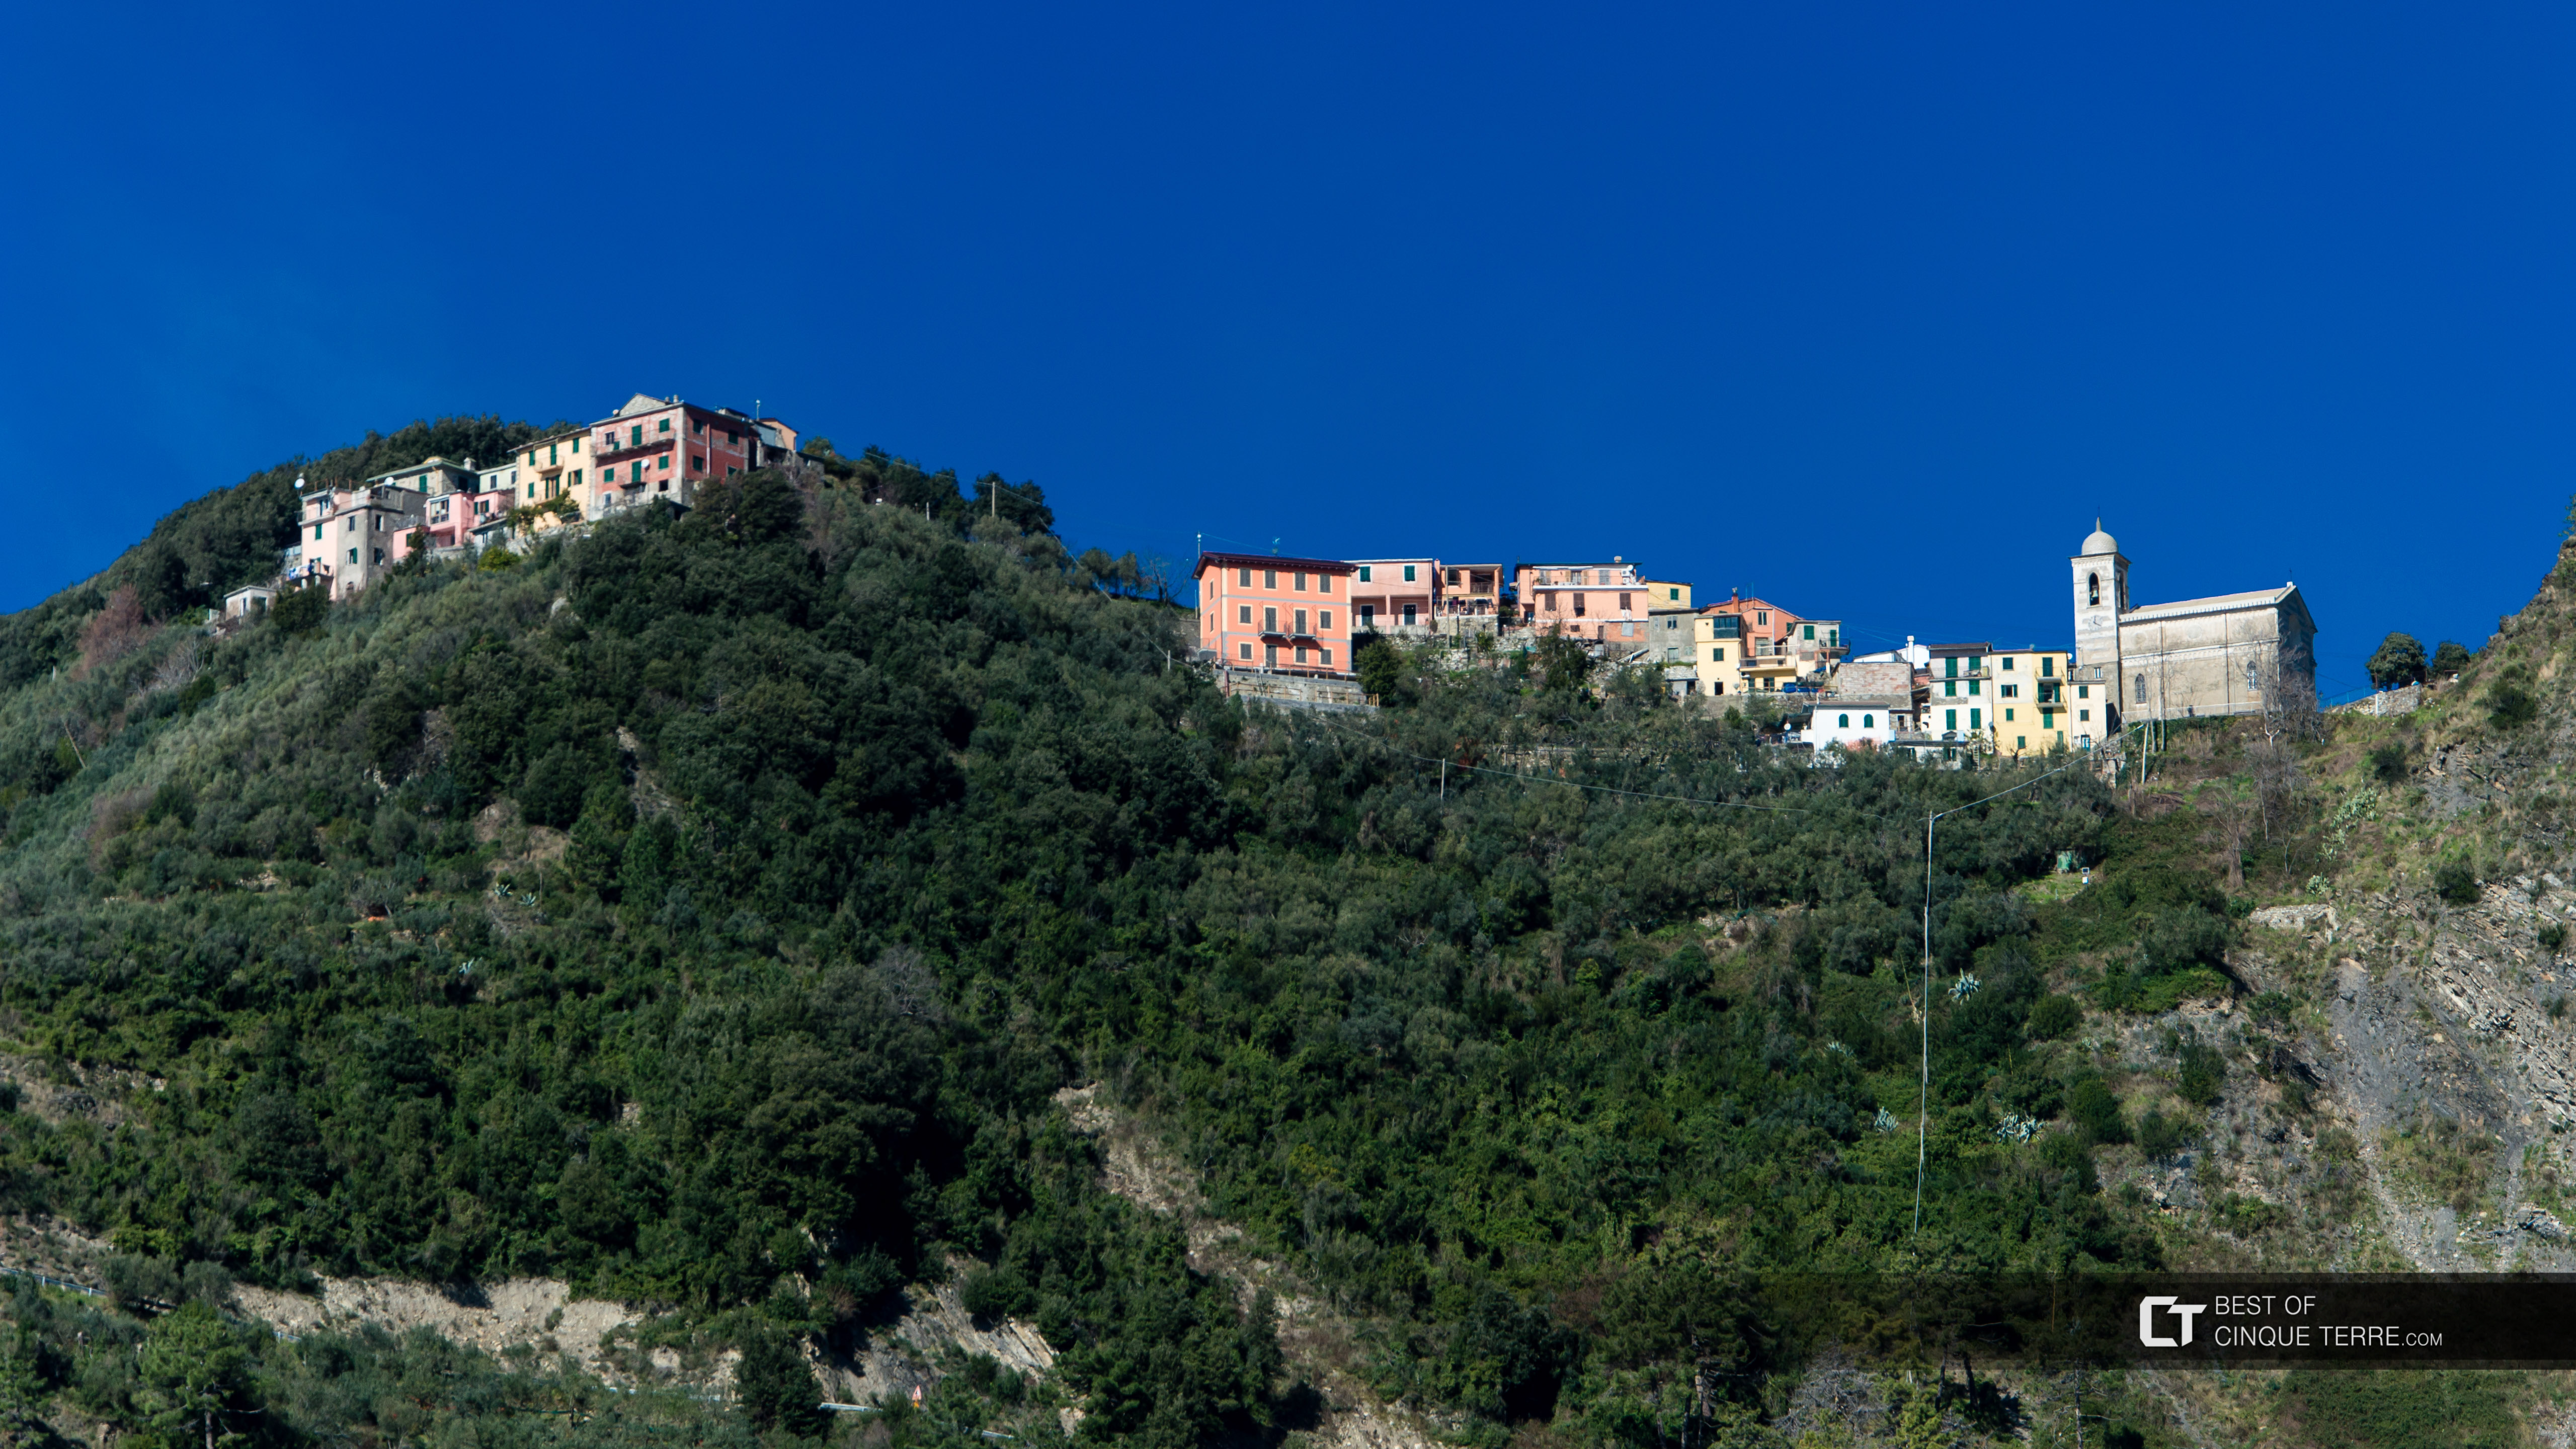 View of San Bernardino from the Blue Trail, Vernazza, Cinque Terre, Italy